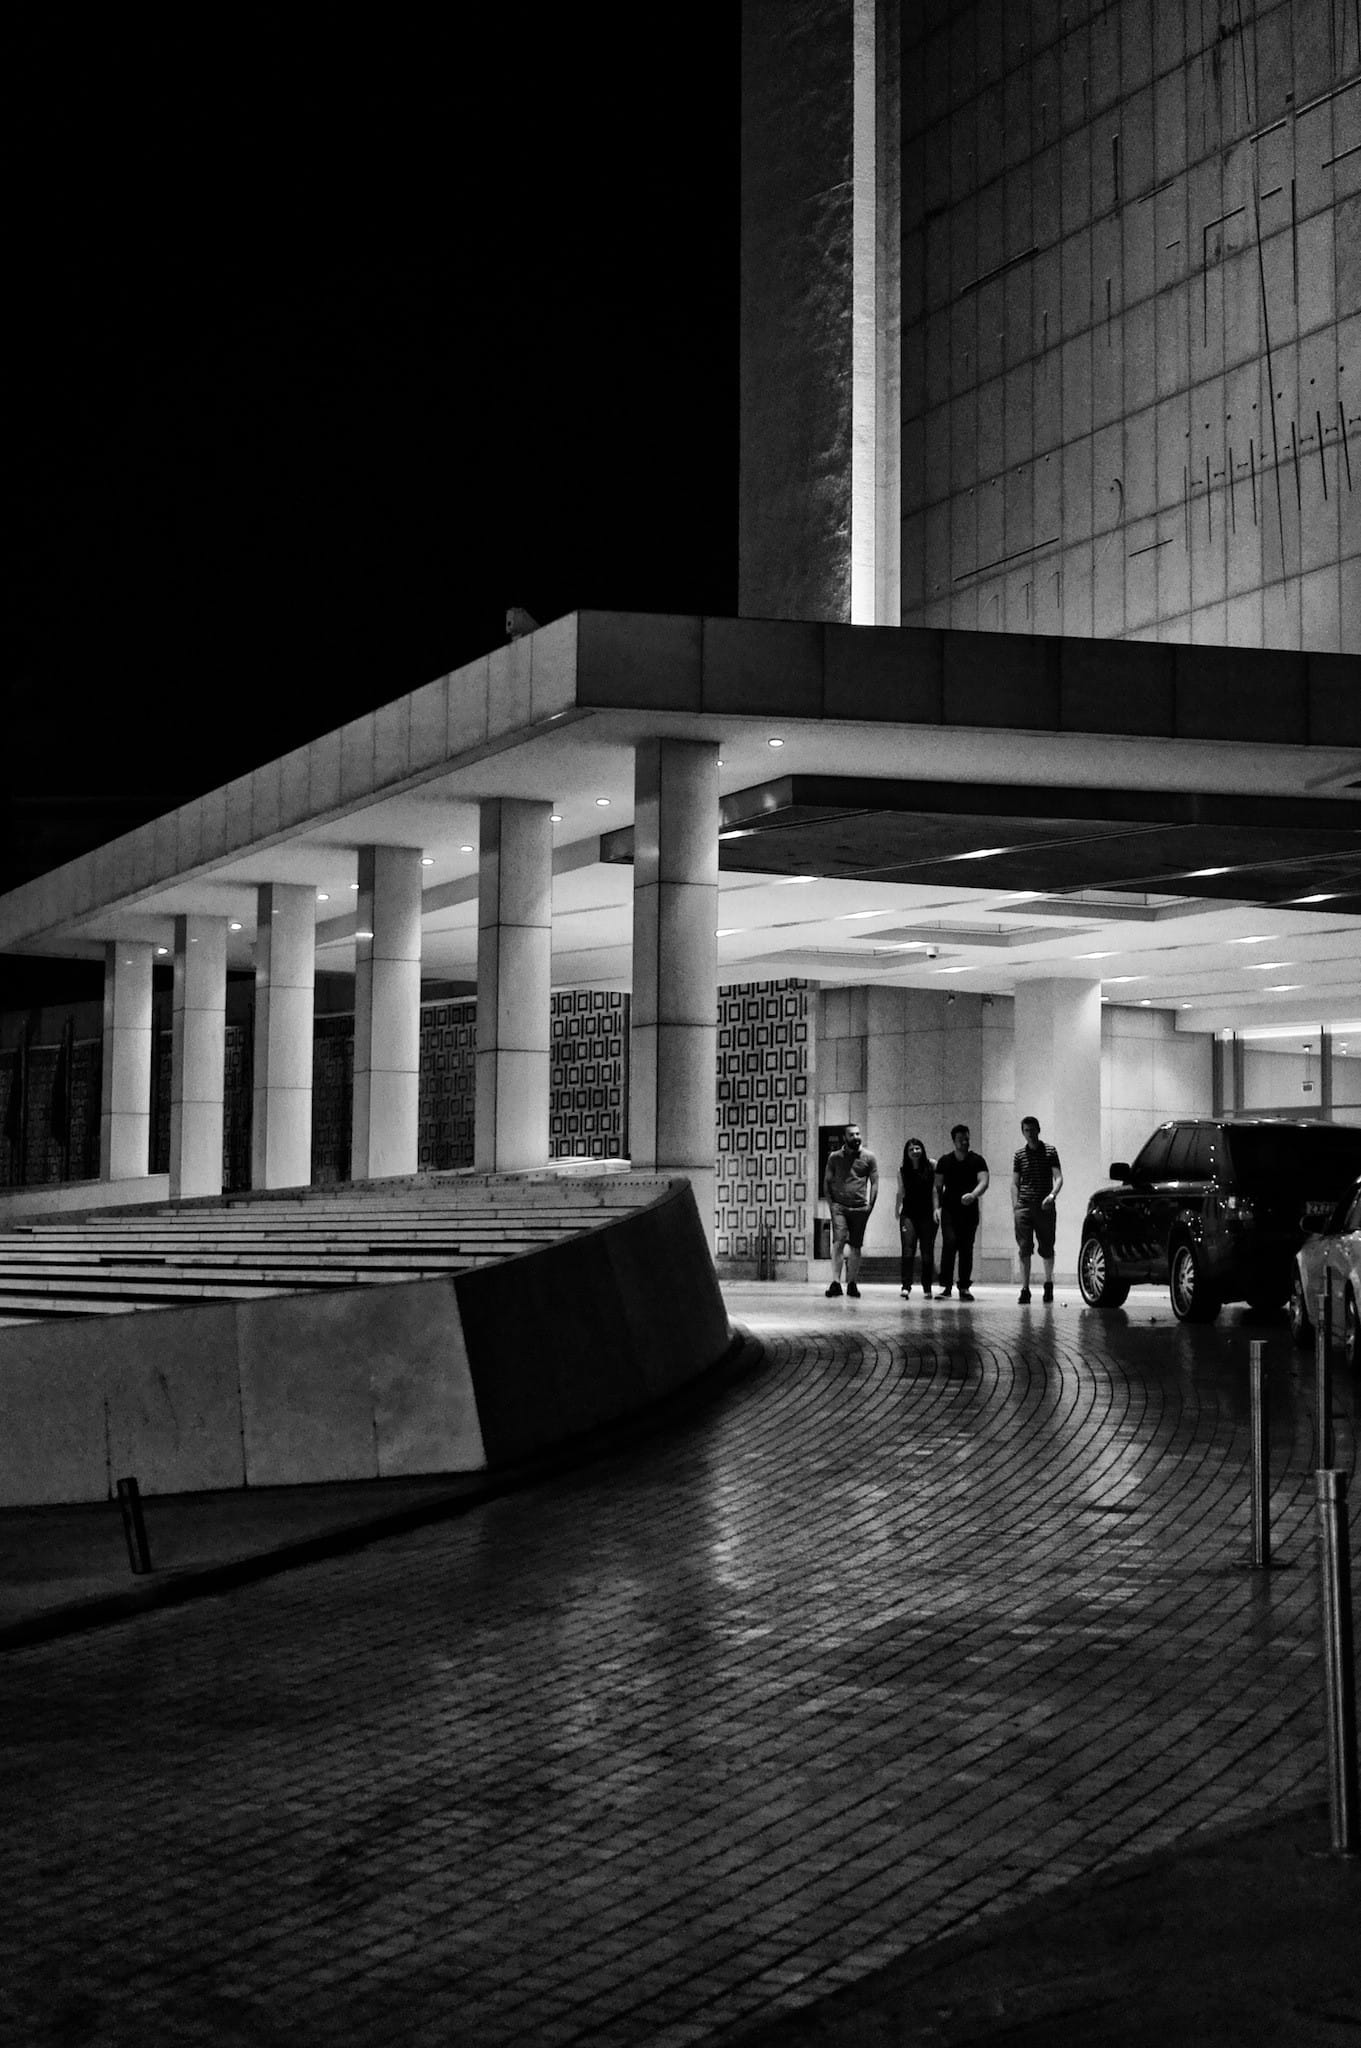 The Athens Hilton by night